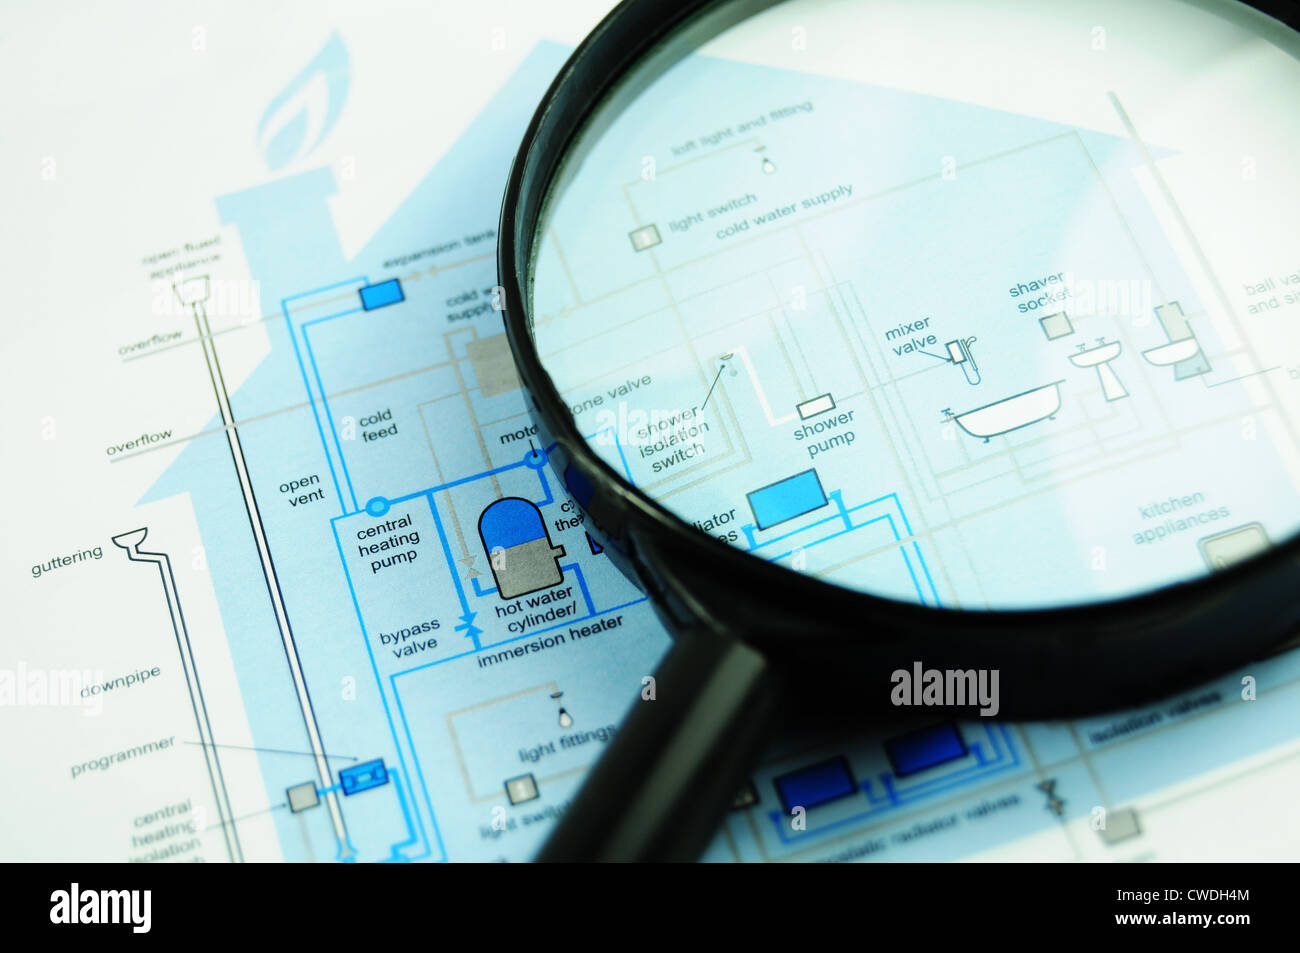 Central heating plan and magnifier Stock Photo: 50085972 - Alamy